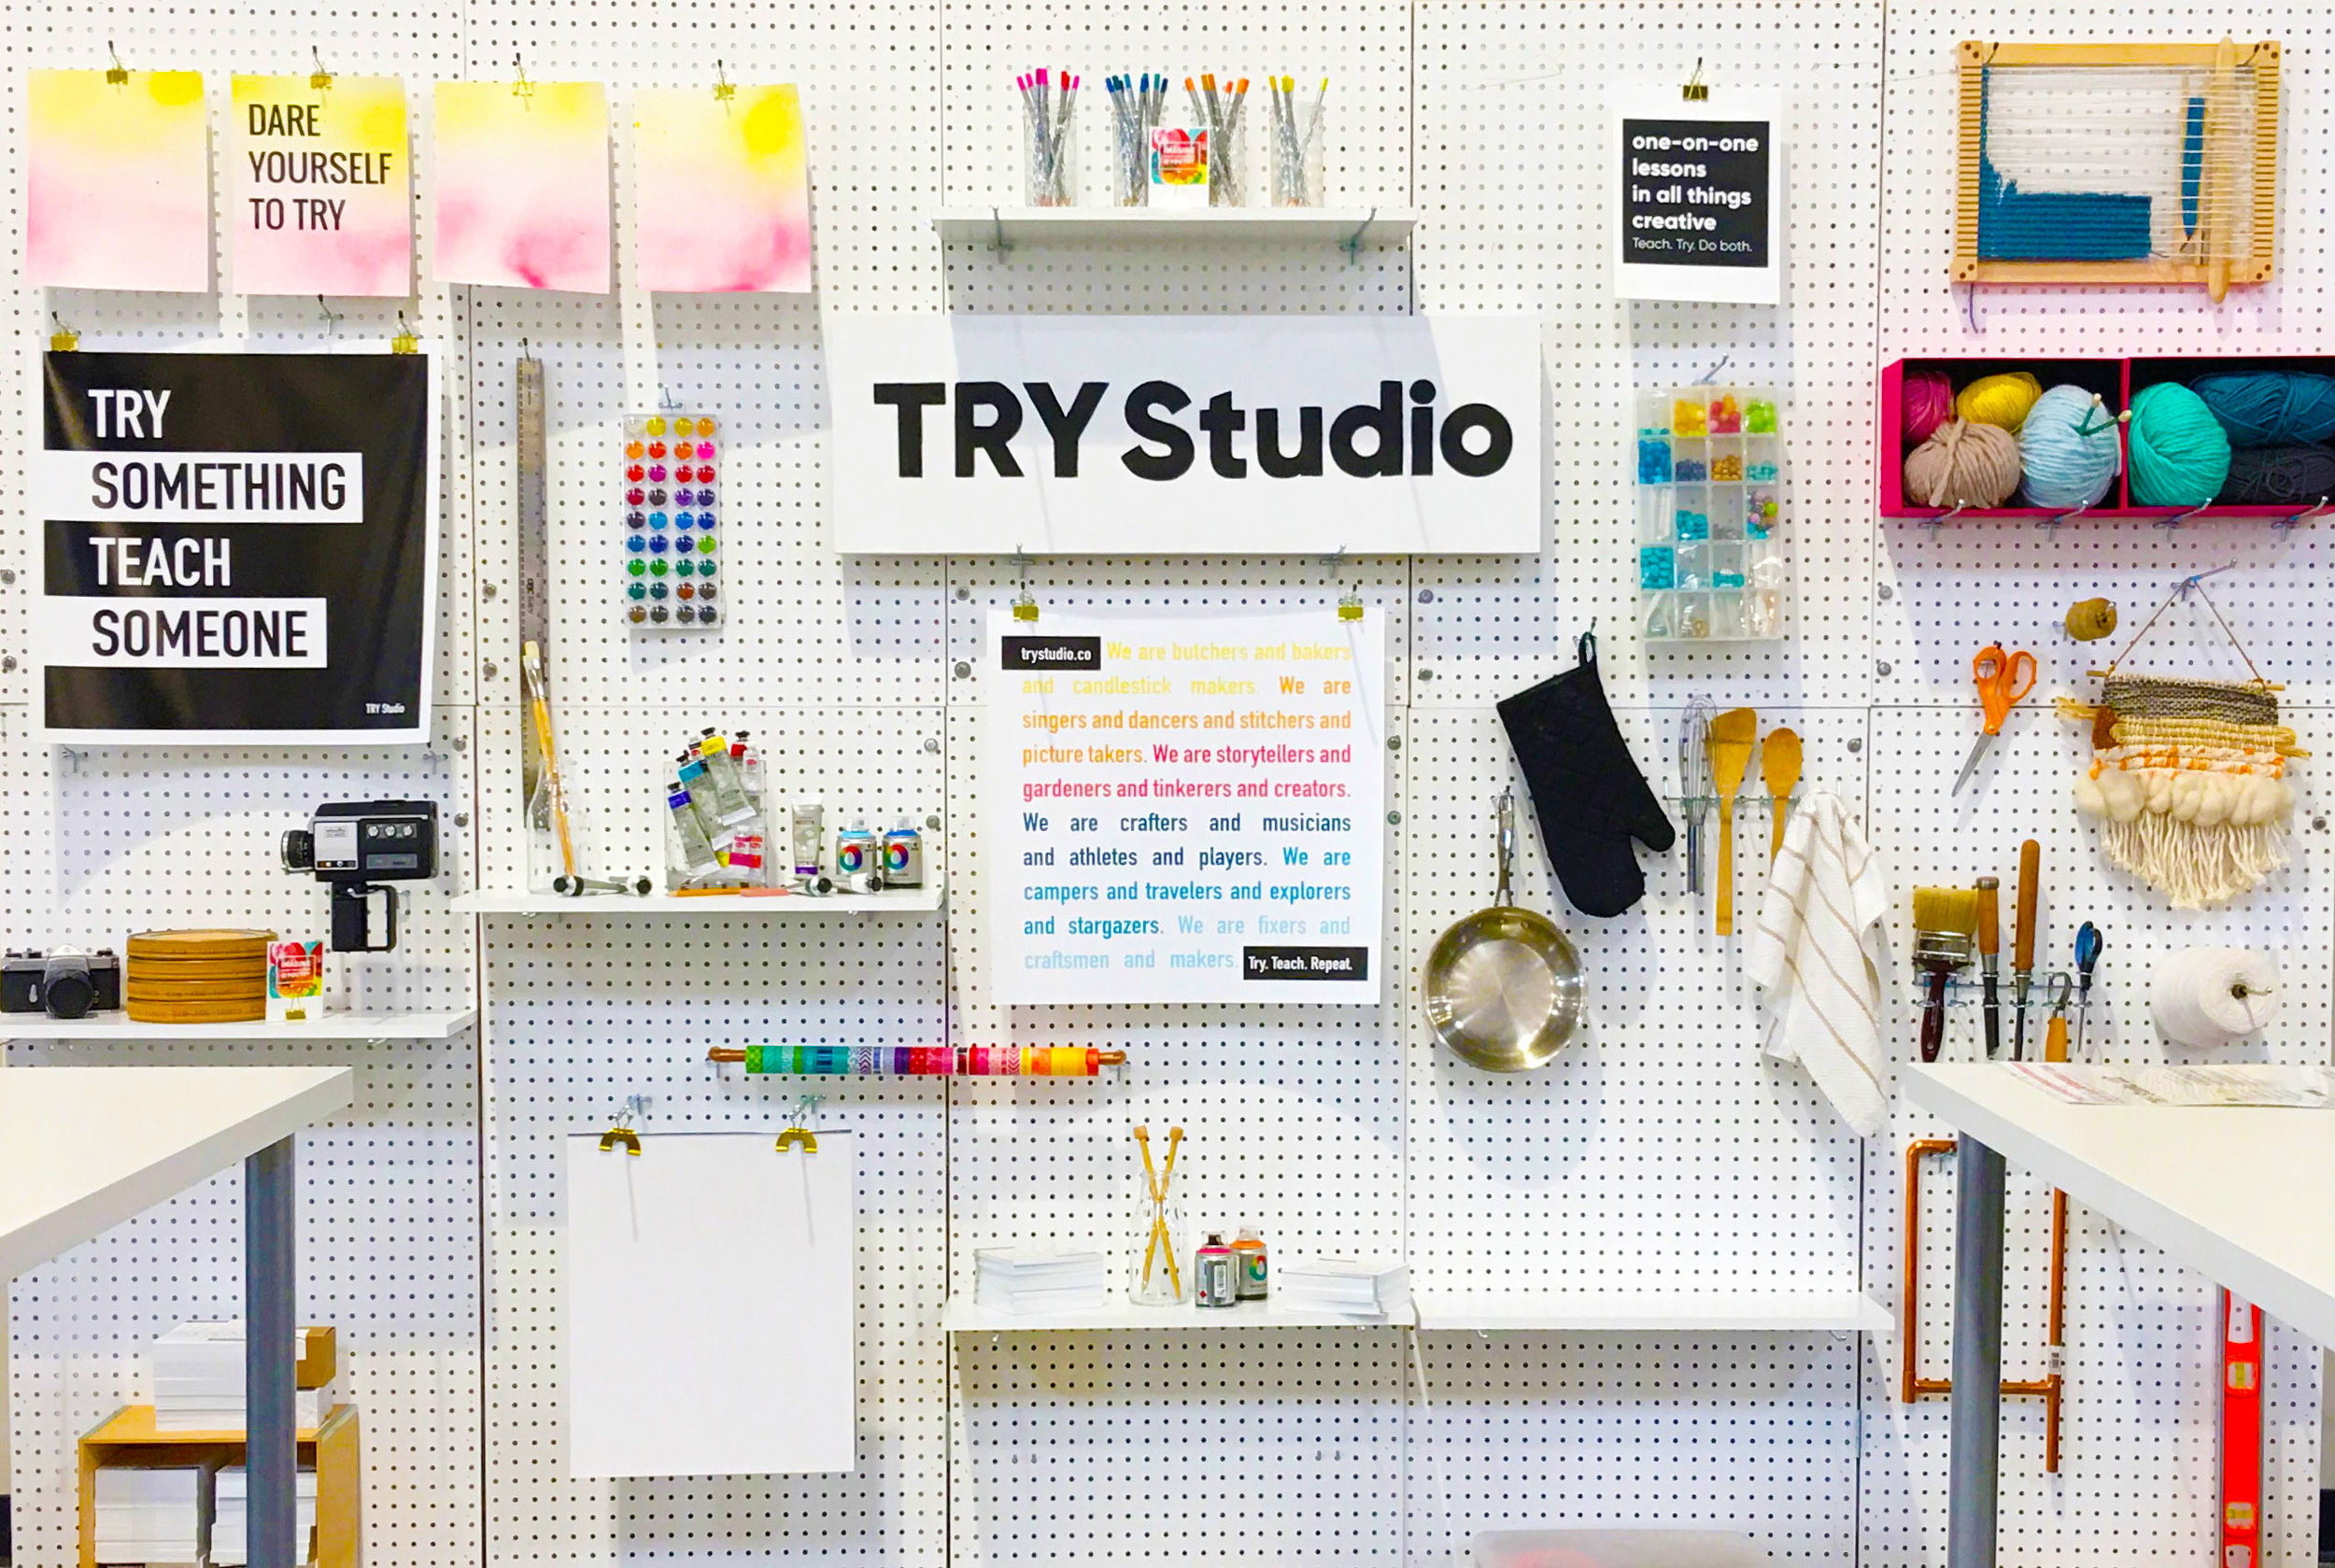 TRY Studio Wall - This 10' x 10' debuted at Maker Faire Bay Area 2017. The goal: translate the feeling of learning something—anything creative—into a physical space.